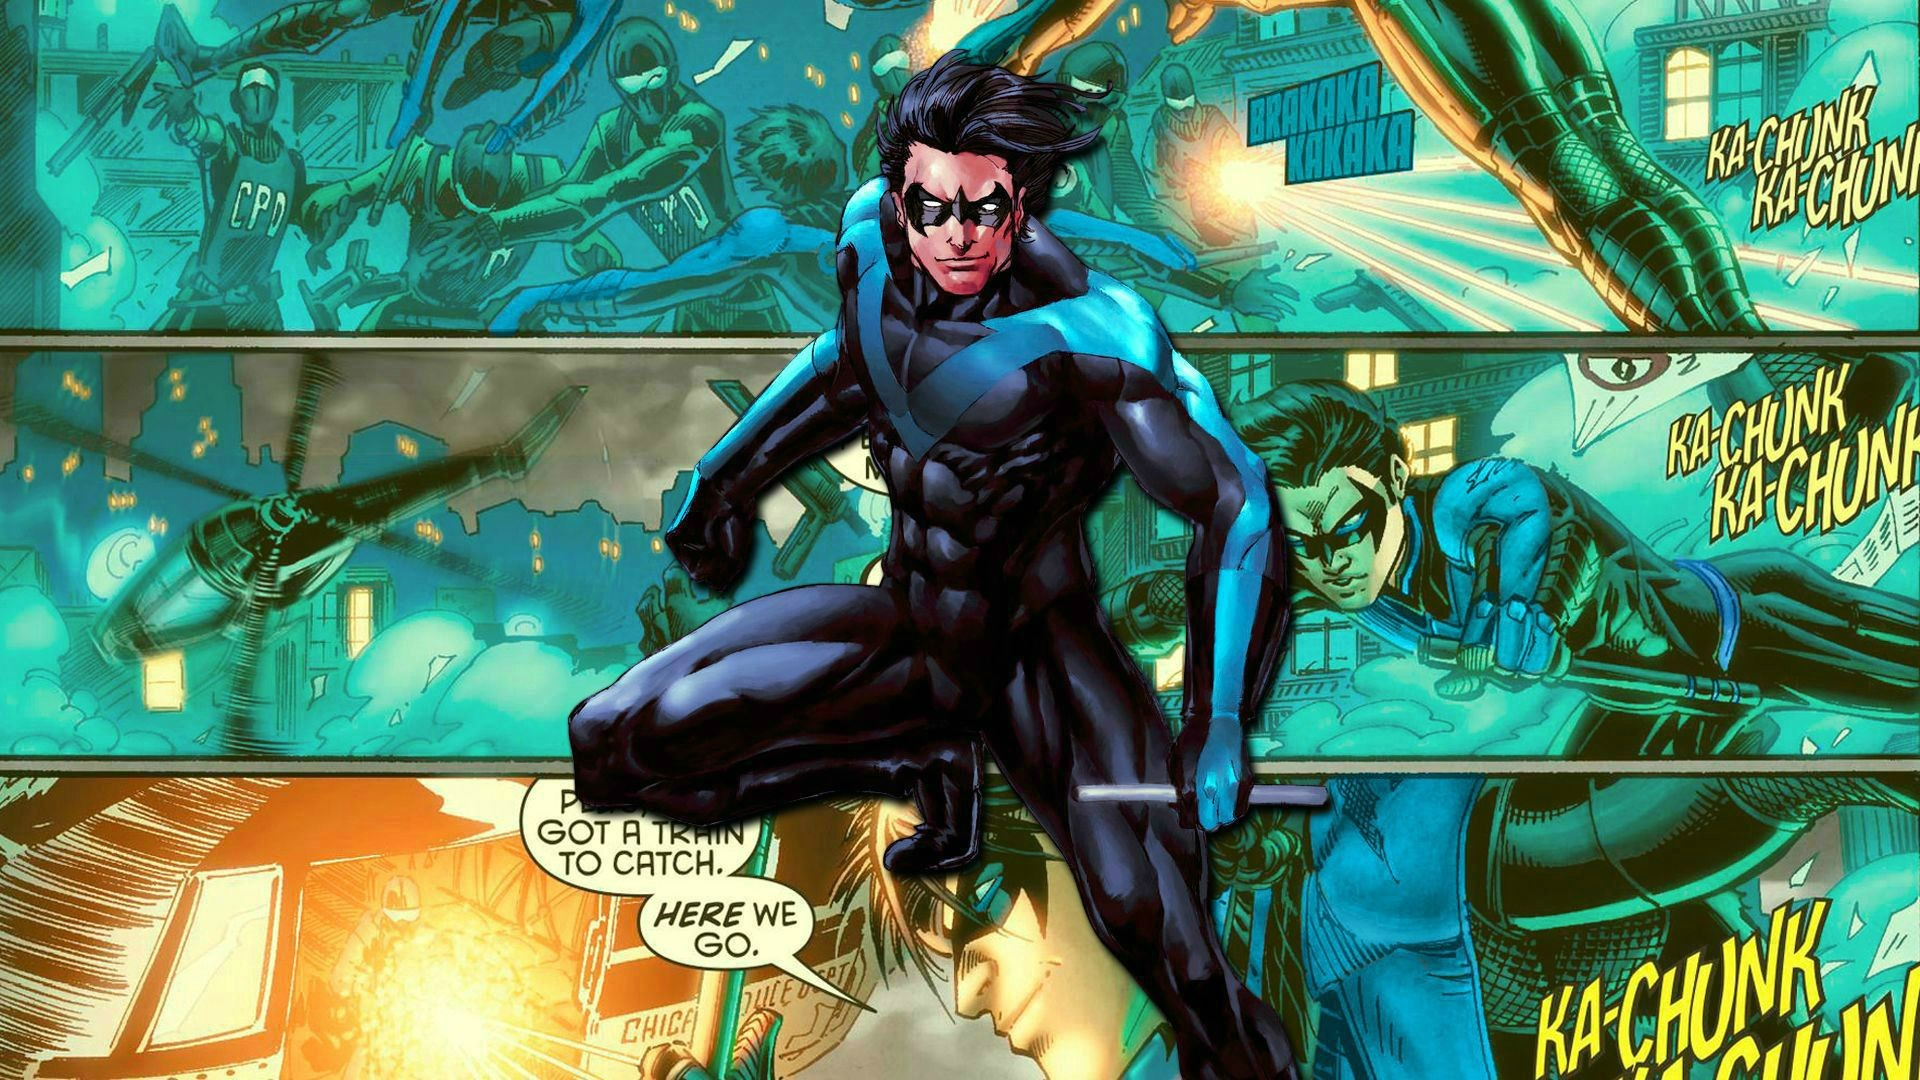 1920x1080 New Nightwing Wallpaper | HD Wallpapers | Pinterest | Wallpaper, Hd  wallpaper and deviantART